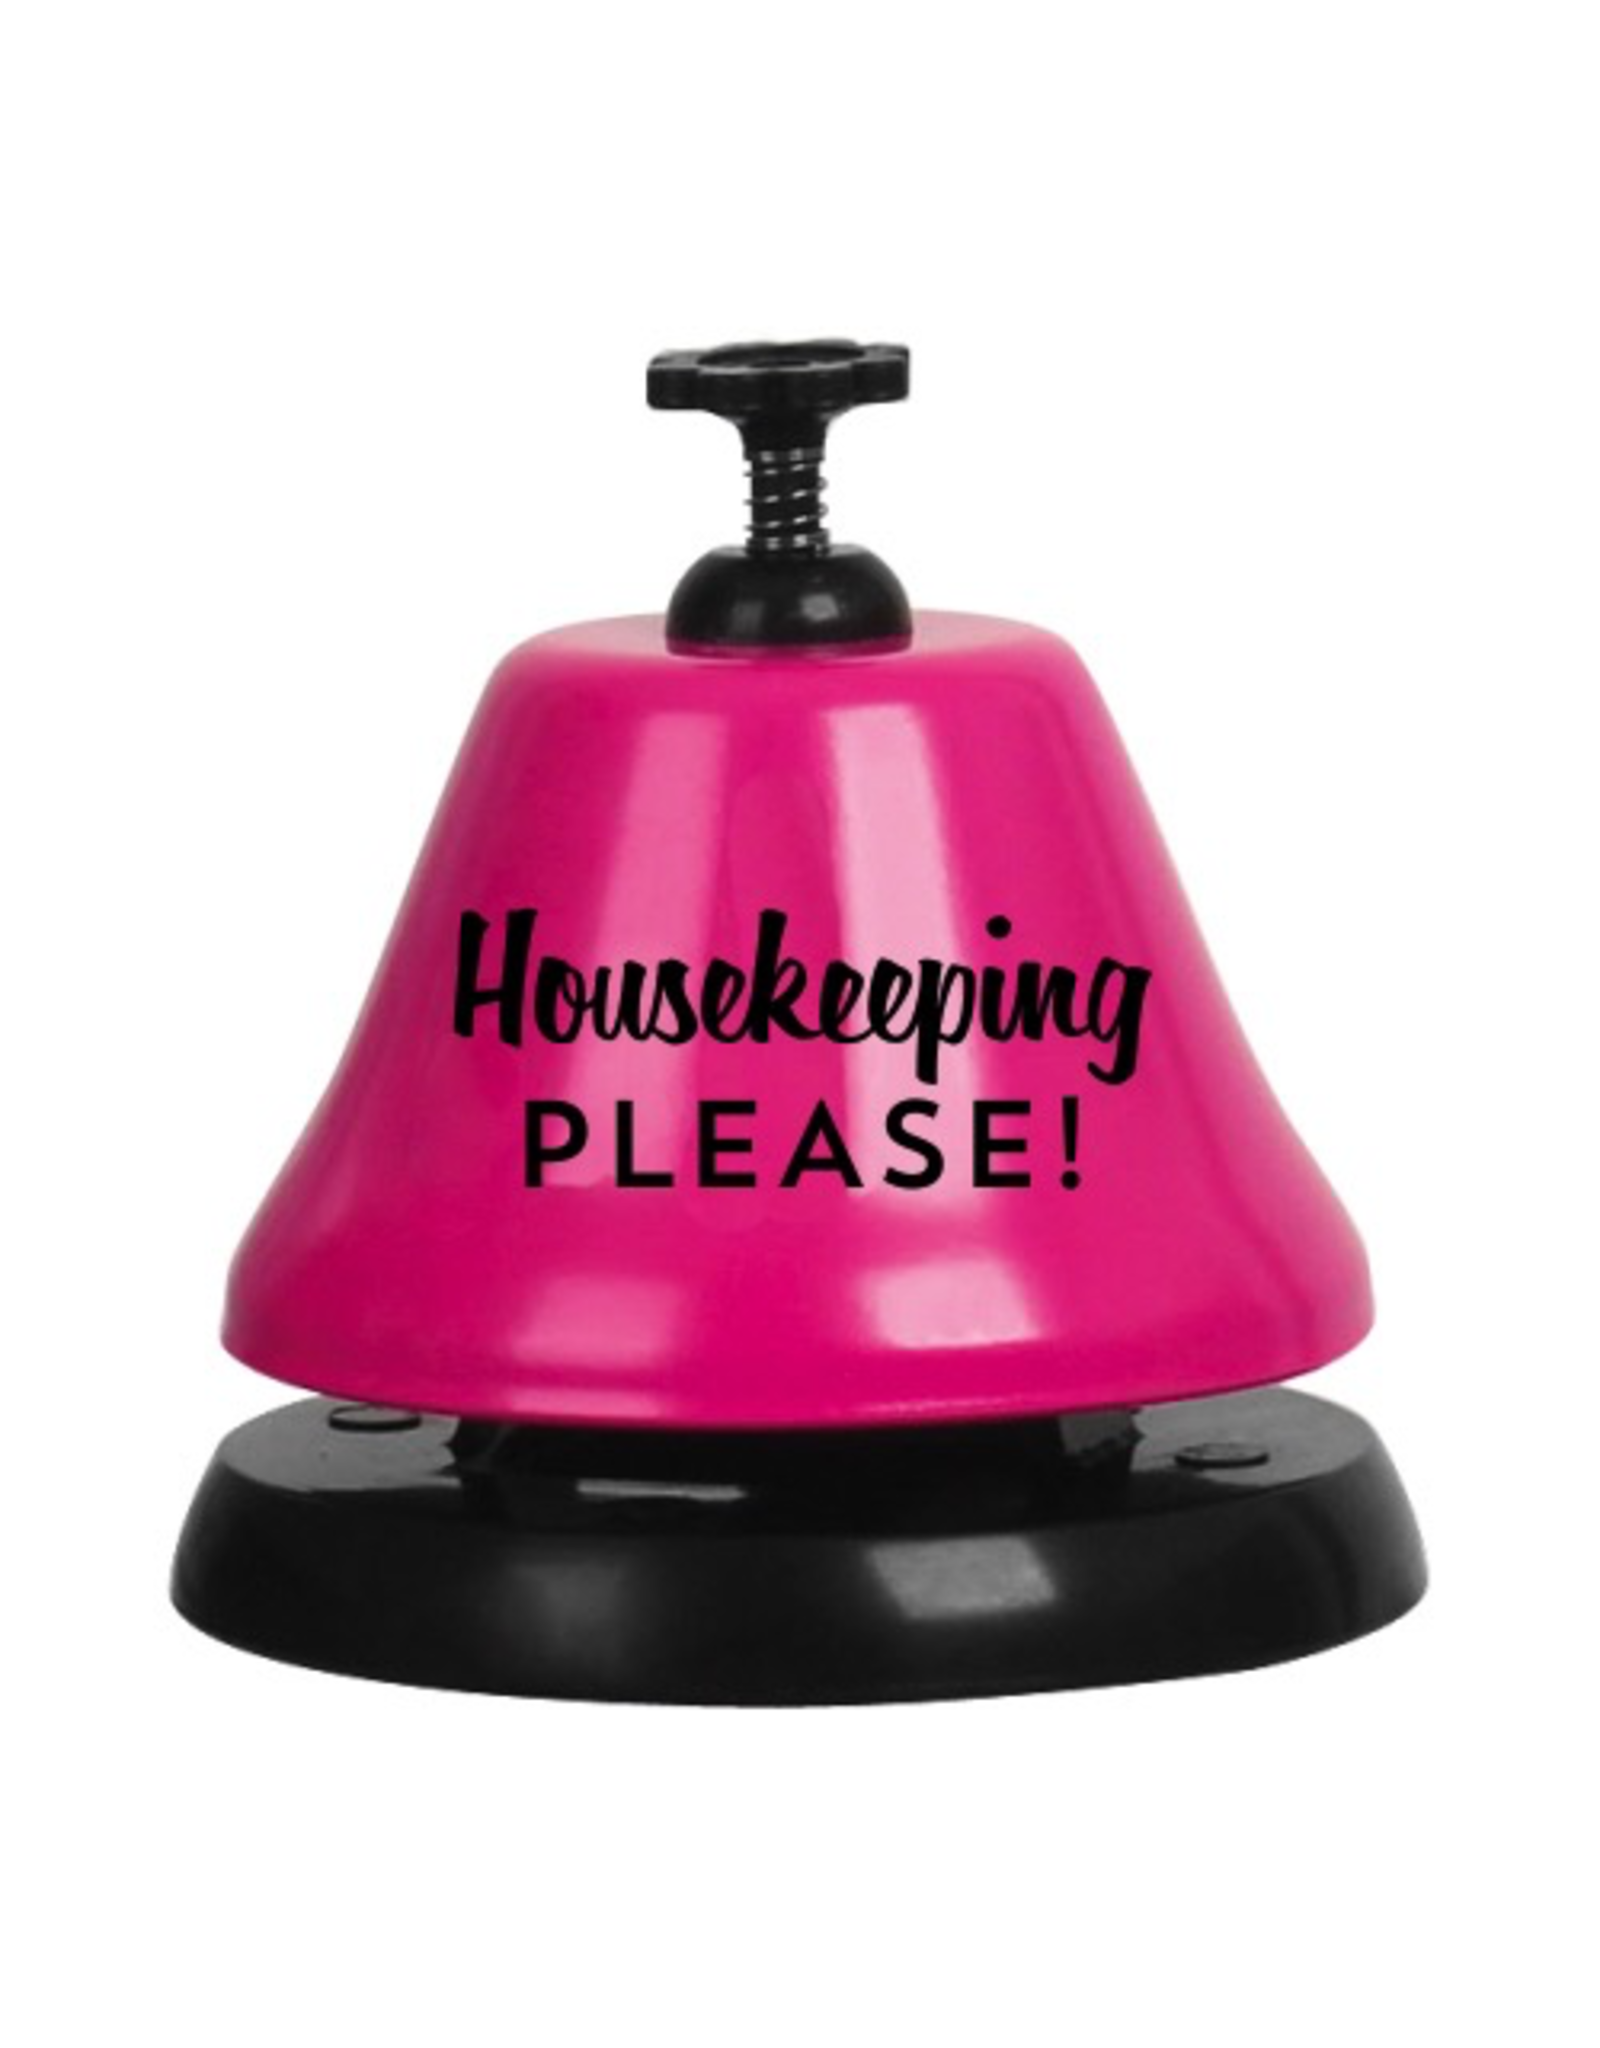 Slant Bartop Bell F155416 Housekeeping Please - Pink